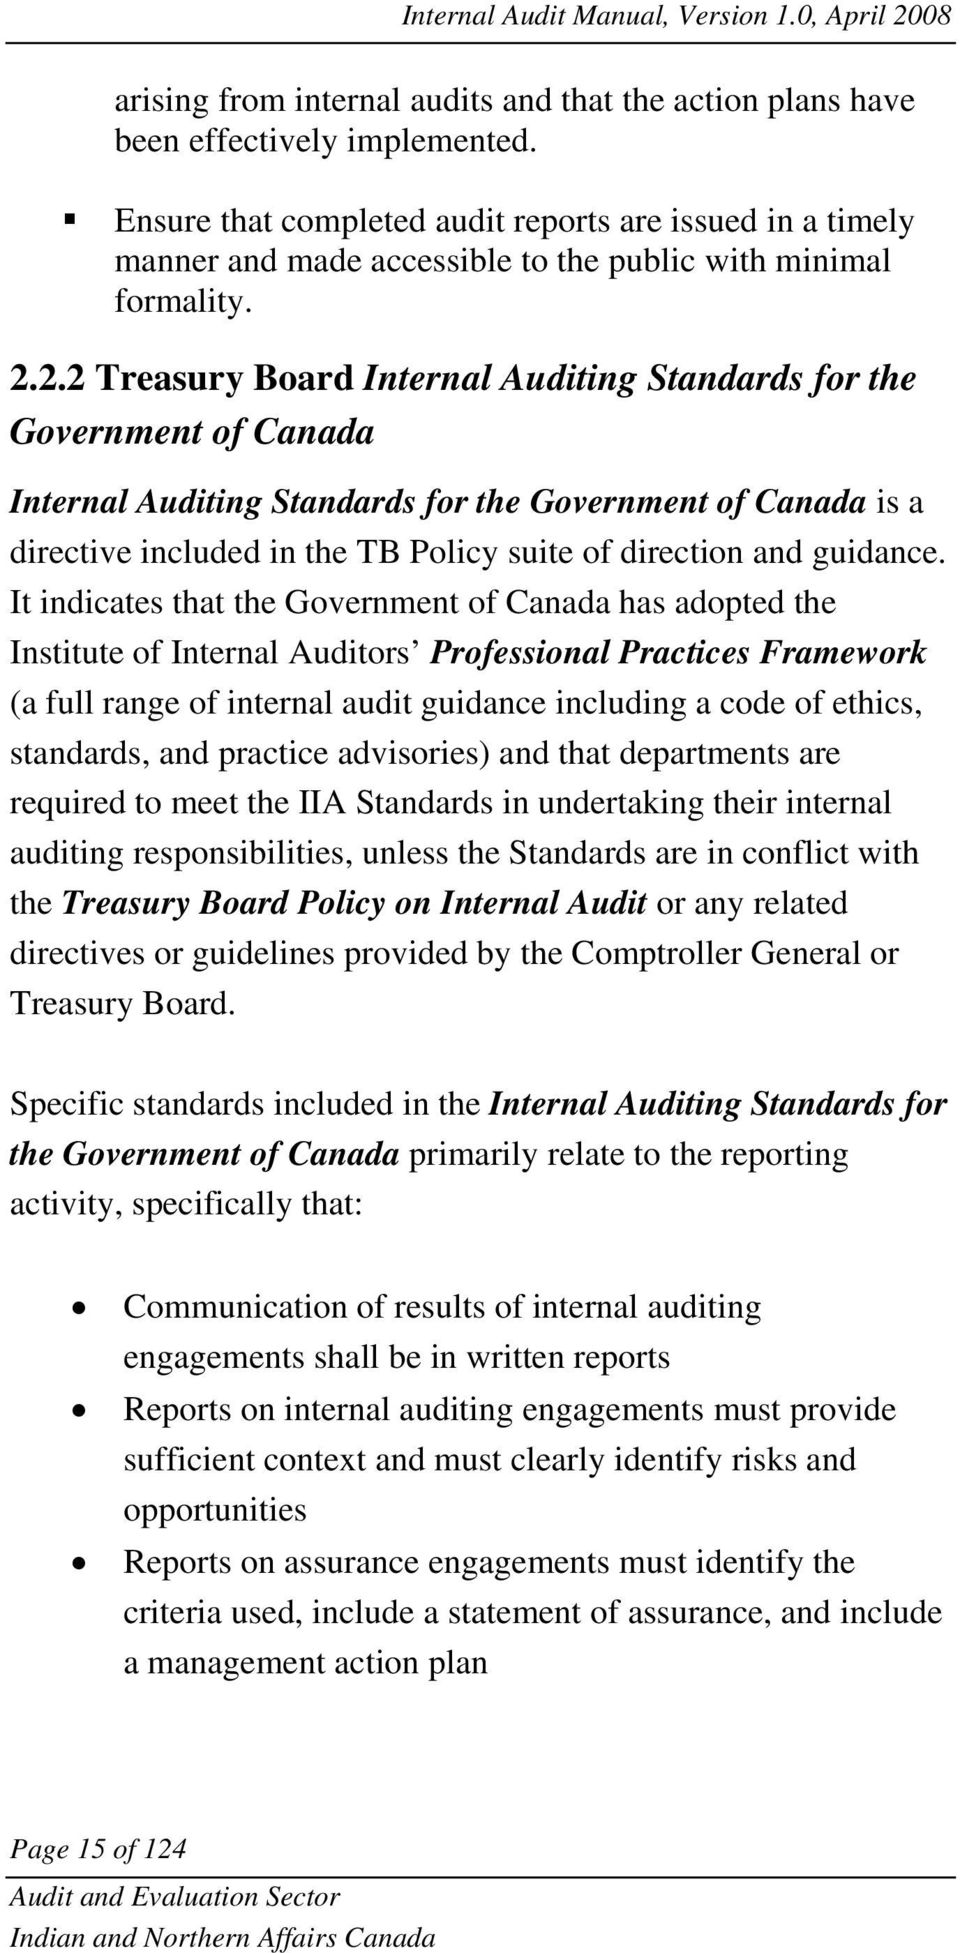 2.2 Treasury Board Internal Auditing Standards for the Government of Canada Internal Auditing Standards for the Government of Canada is a directive included in the TB Policy suite of direction and